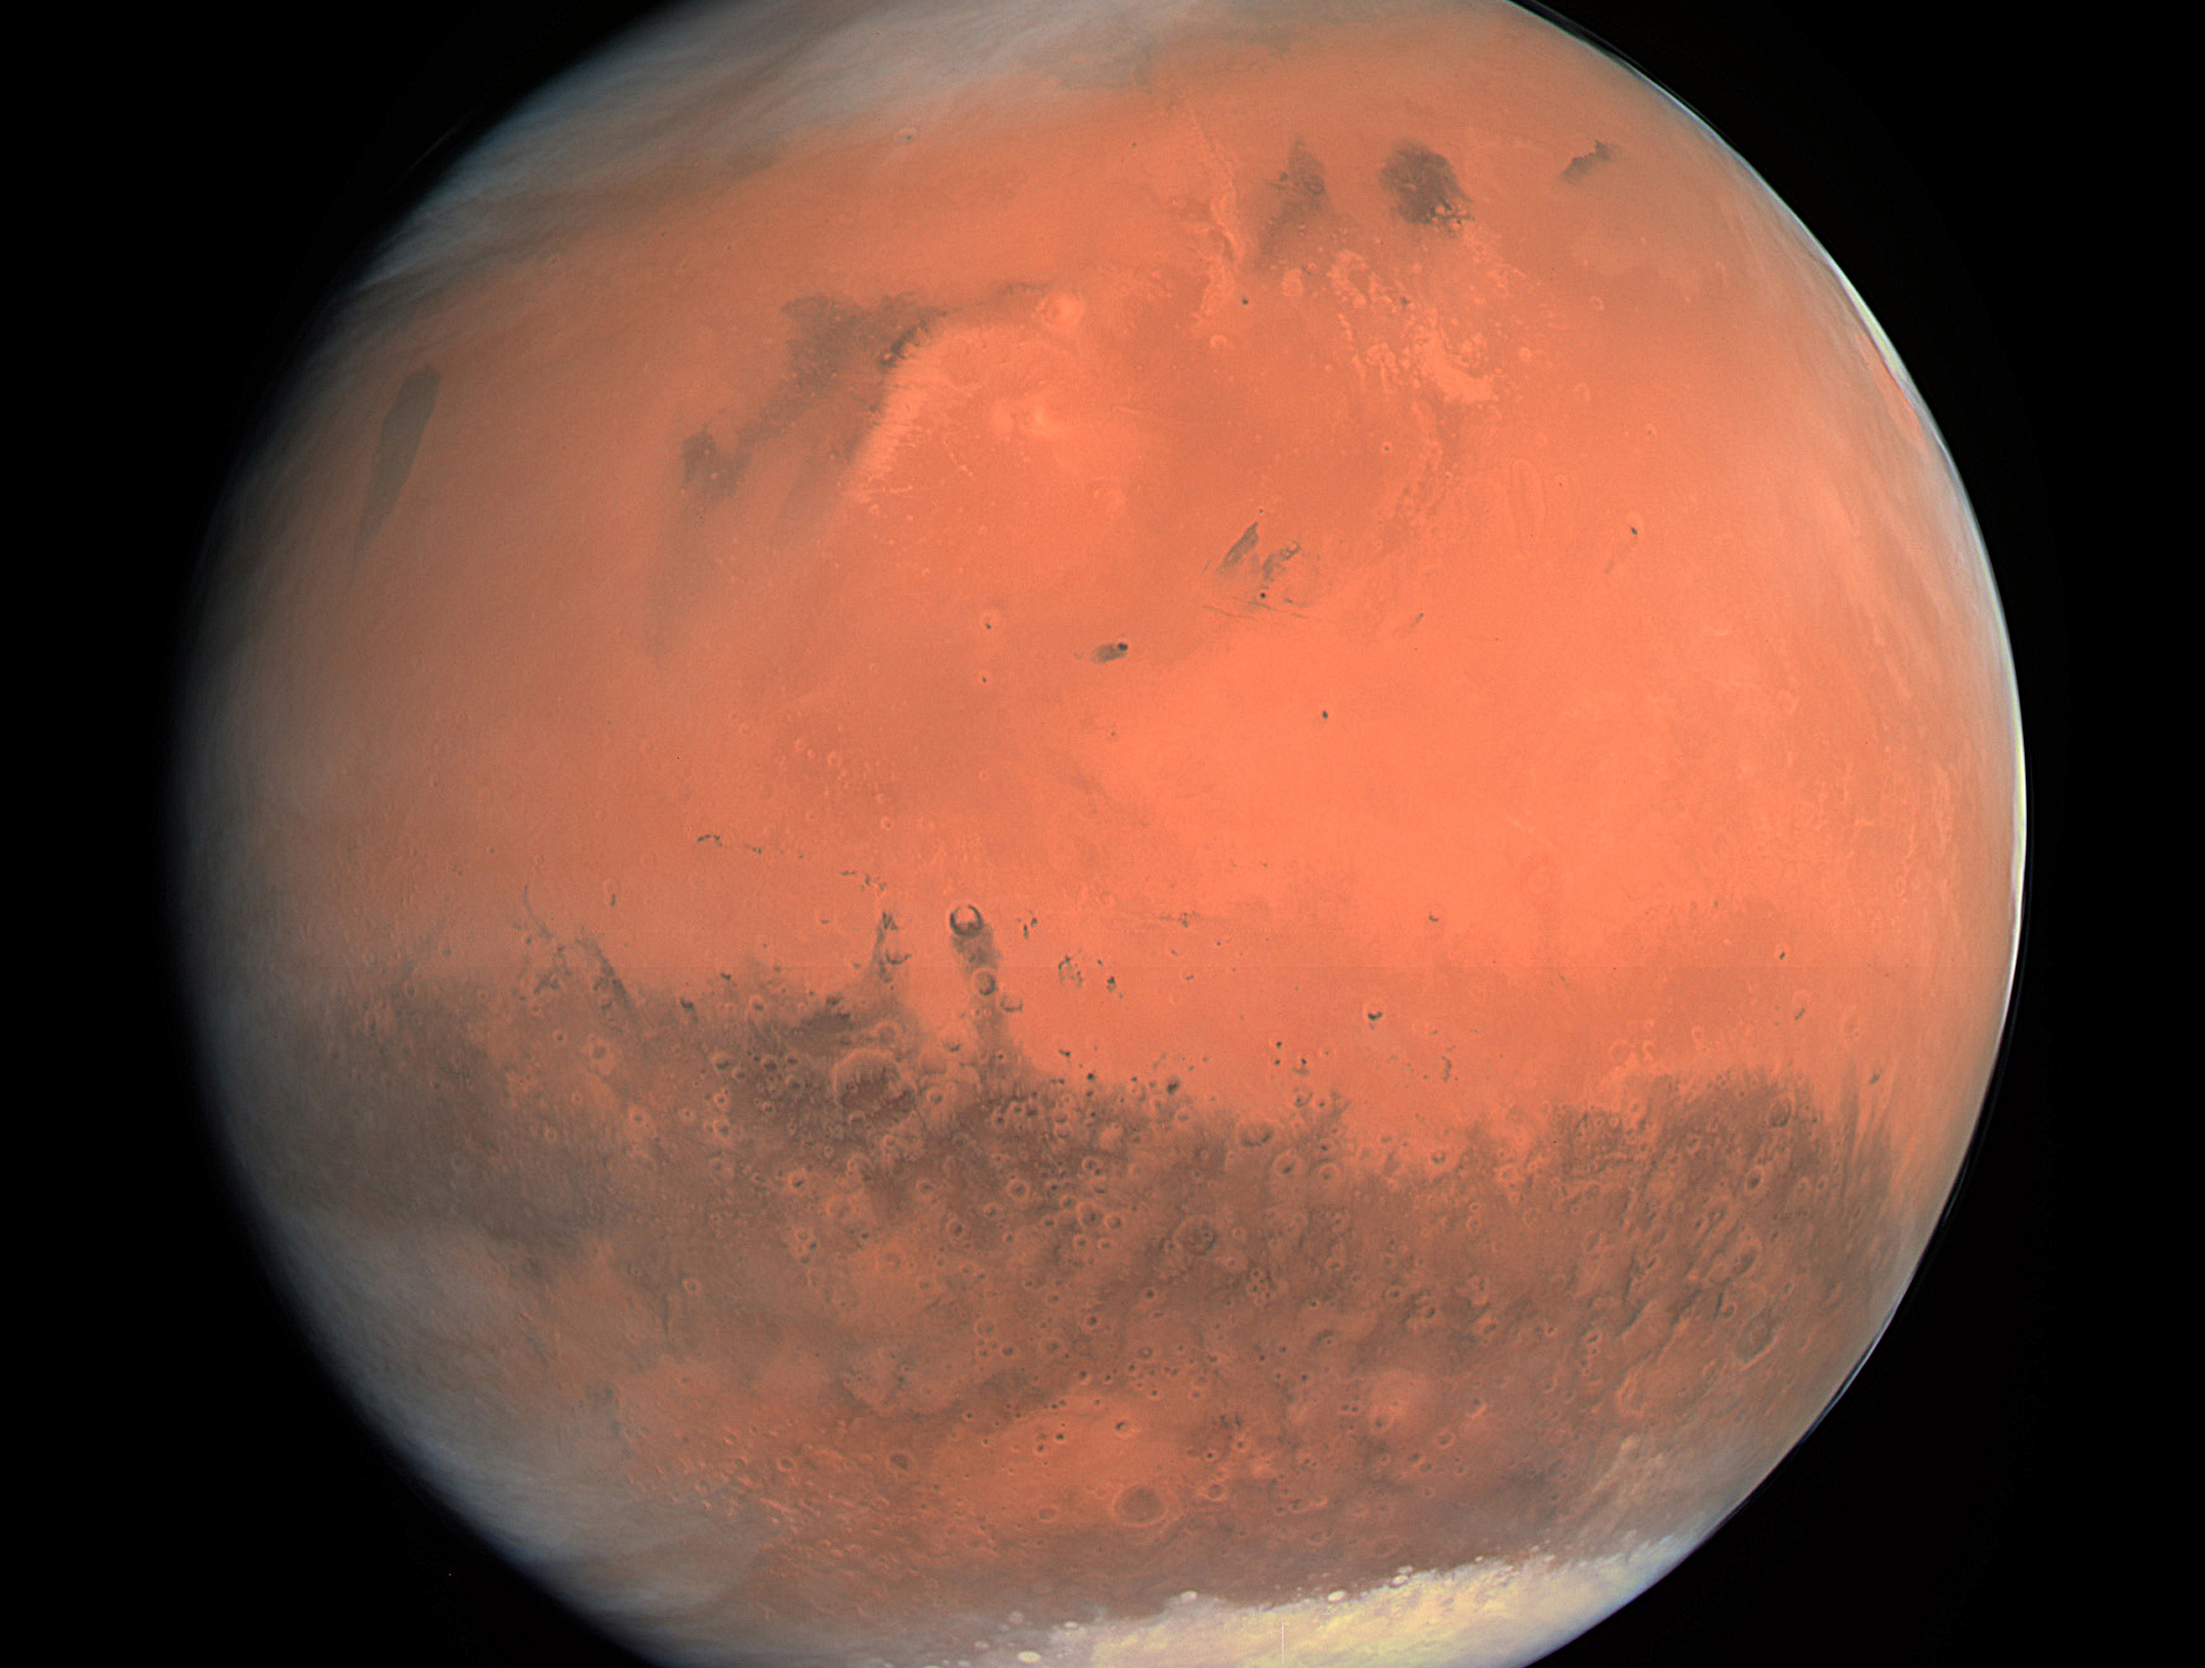 Destiny Of NASA's Opportunity Rover Indefinite As Martian Dust Storm Attains Peak Strength